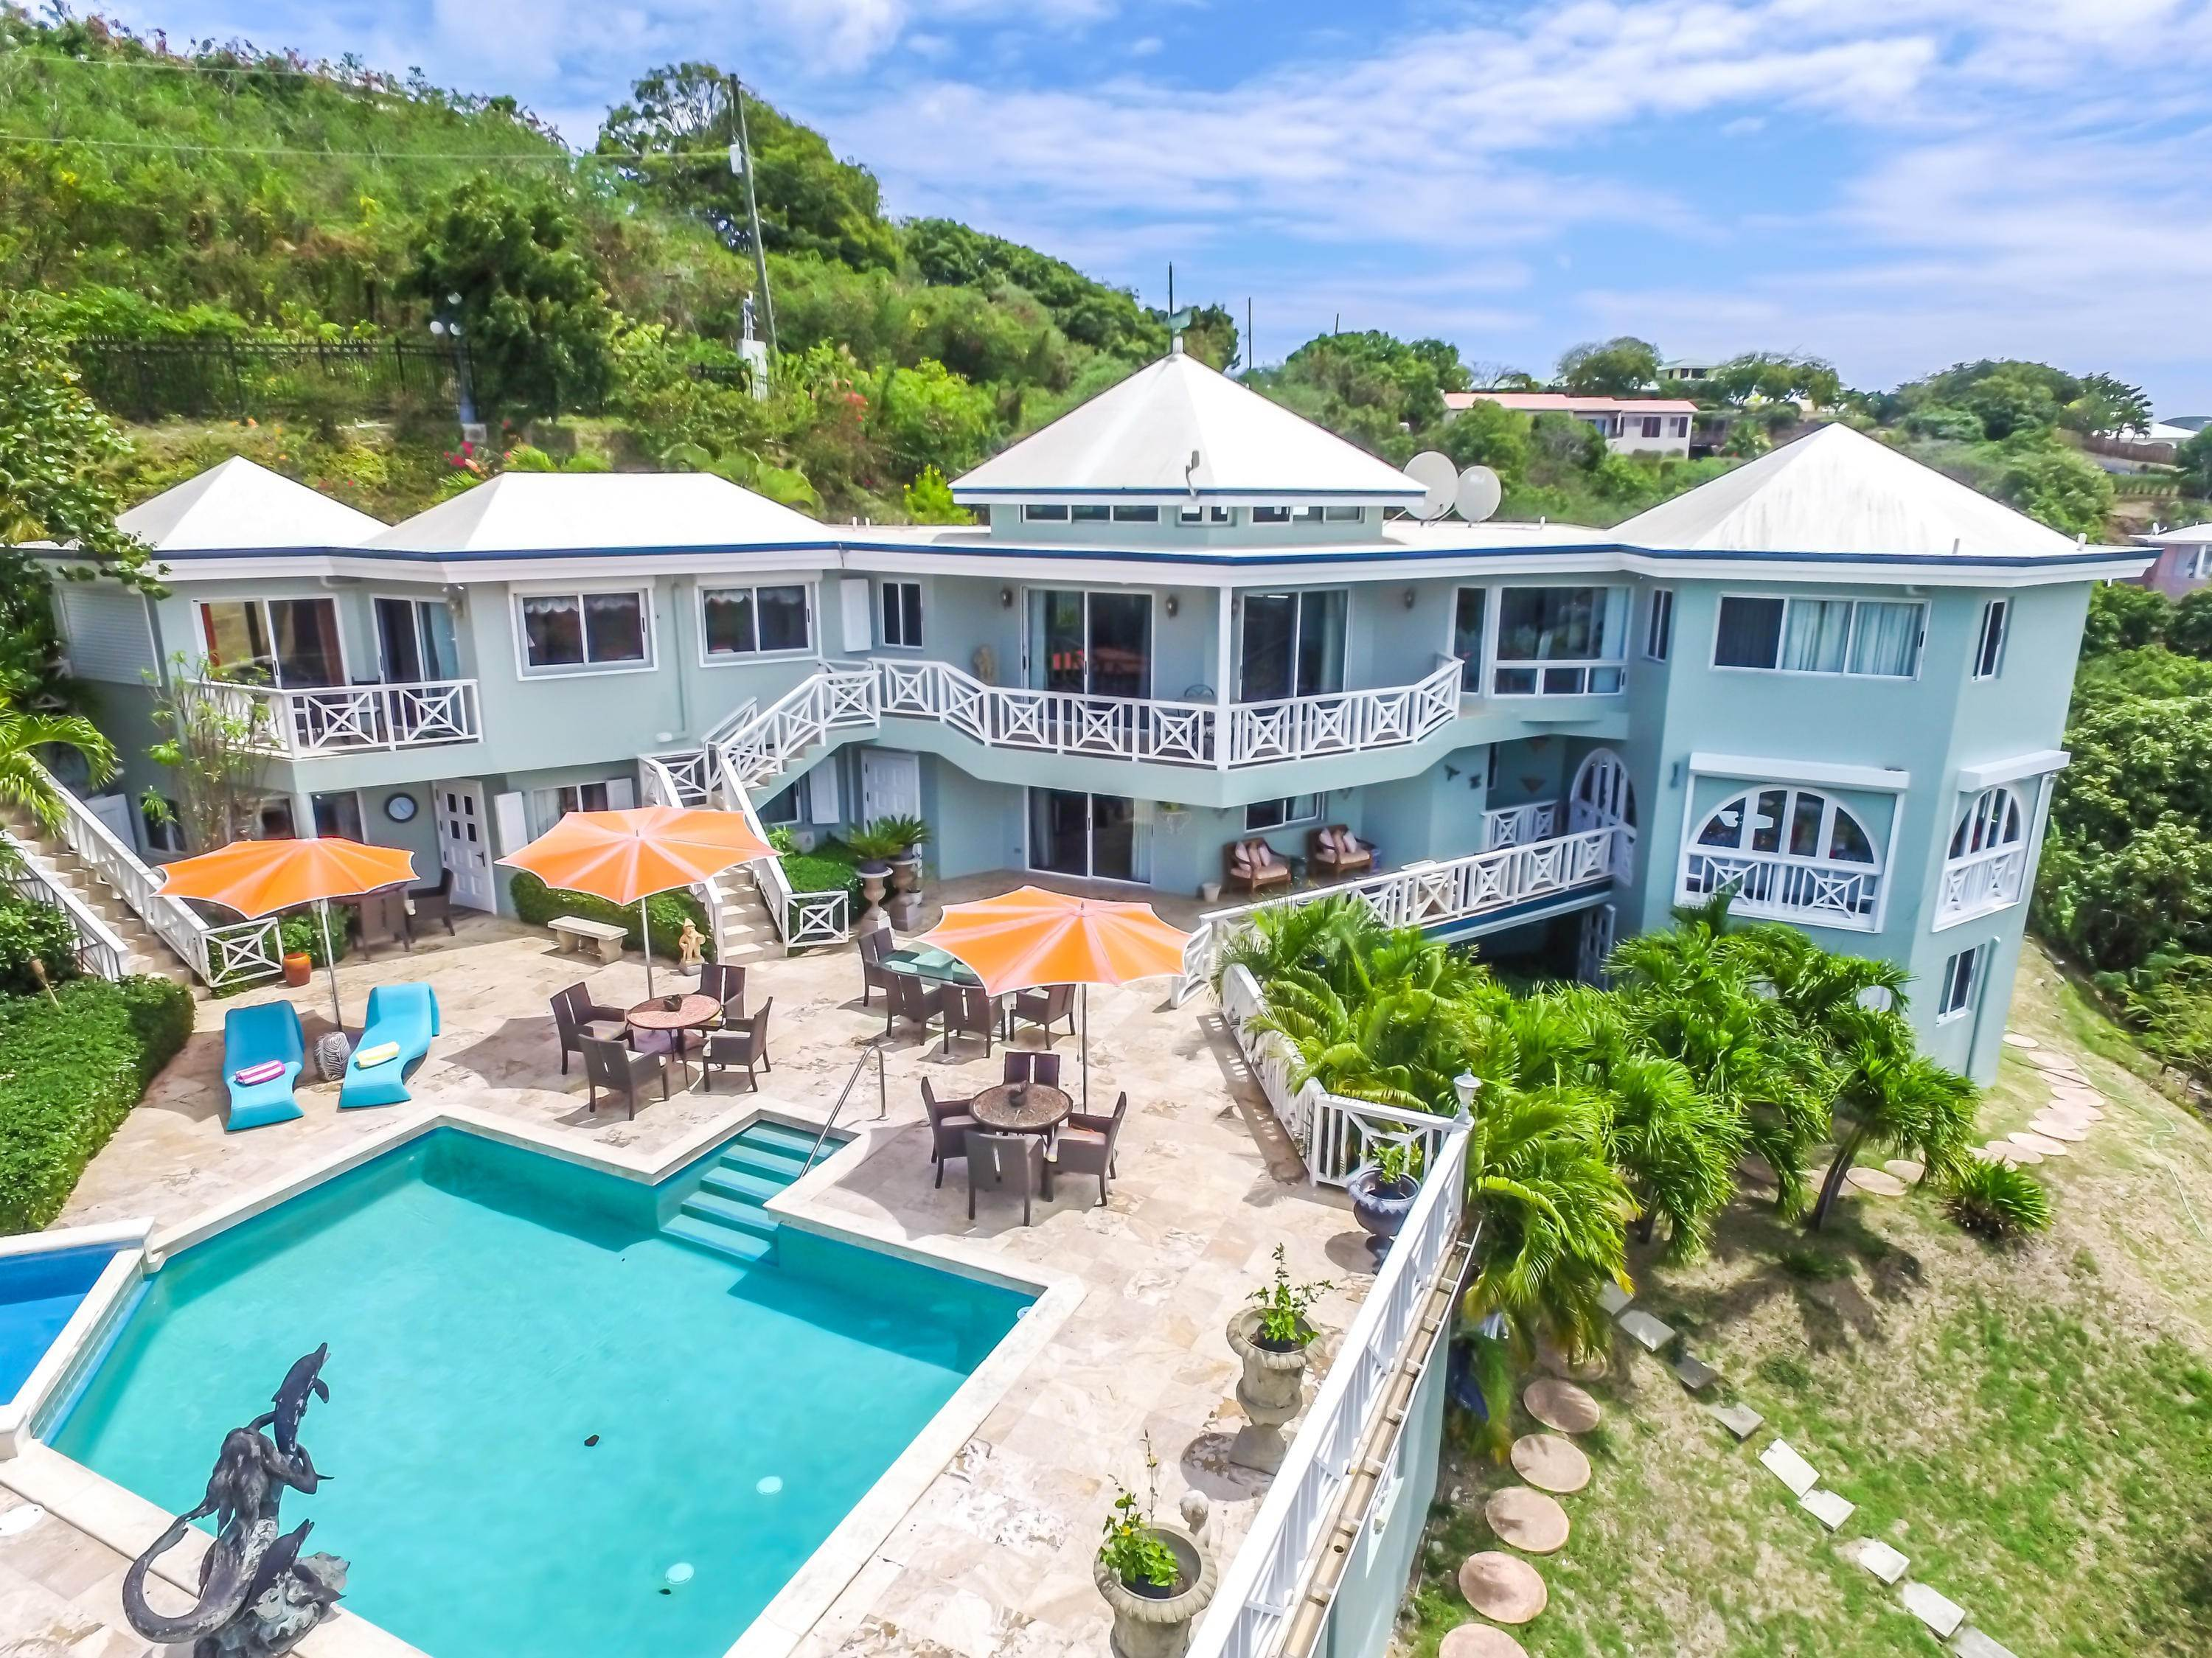 Single Family Homes for Sale at 129 Anna's Hope EA St Croix, Virgin Islands 00820 United States Virgin Islands